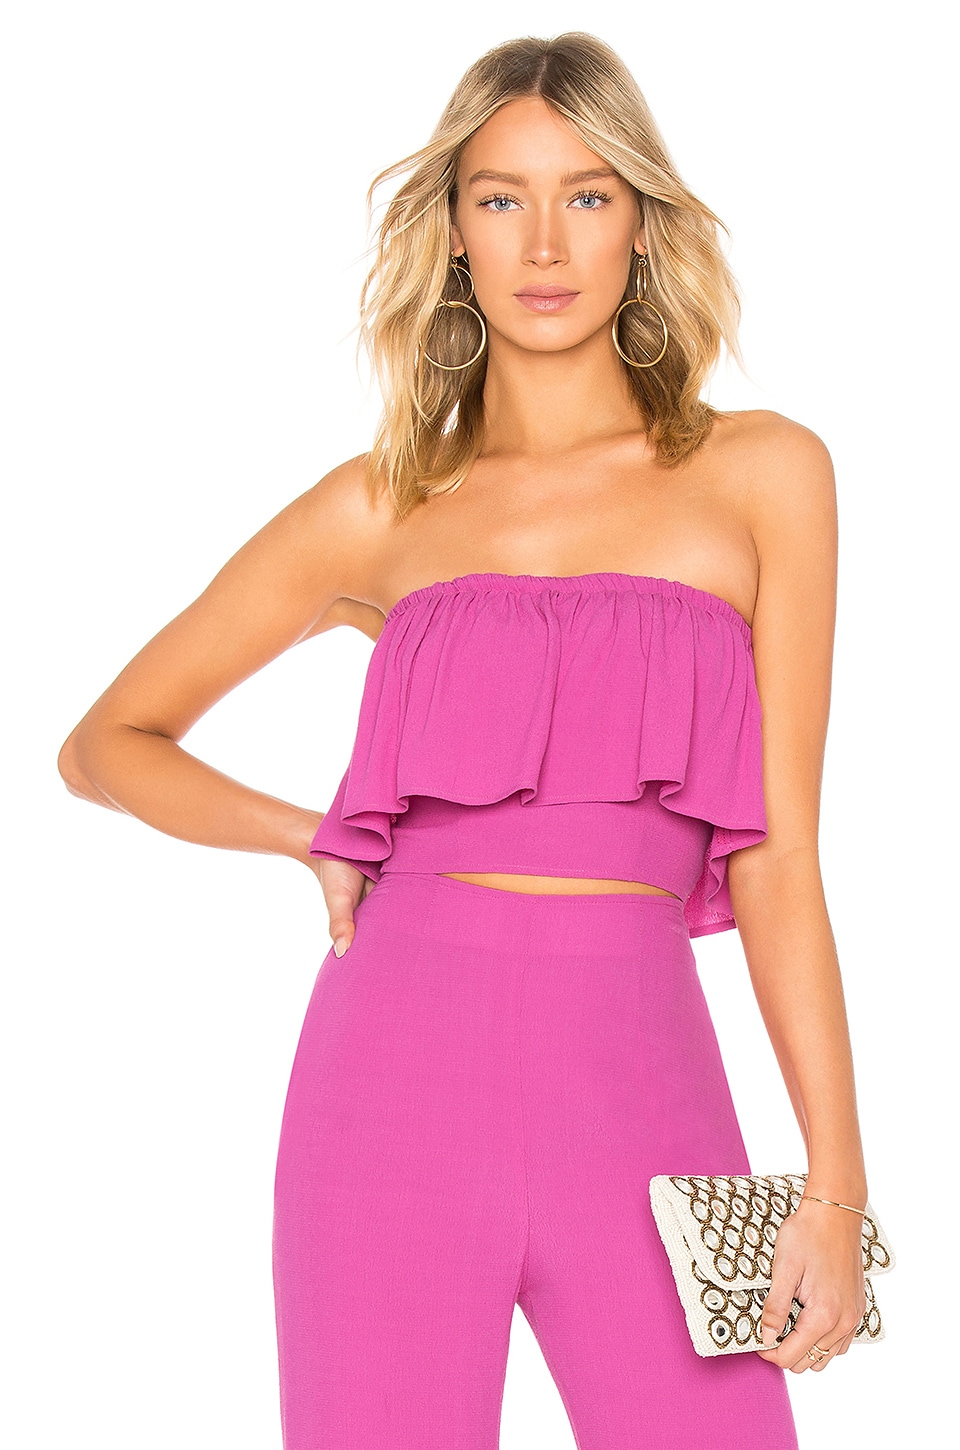 FLYNN SKYE Fiona Crop Top in Passion Fruit